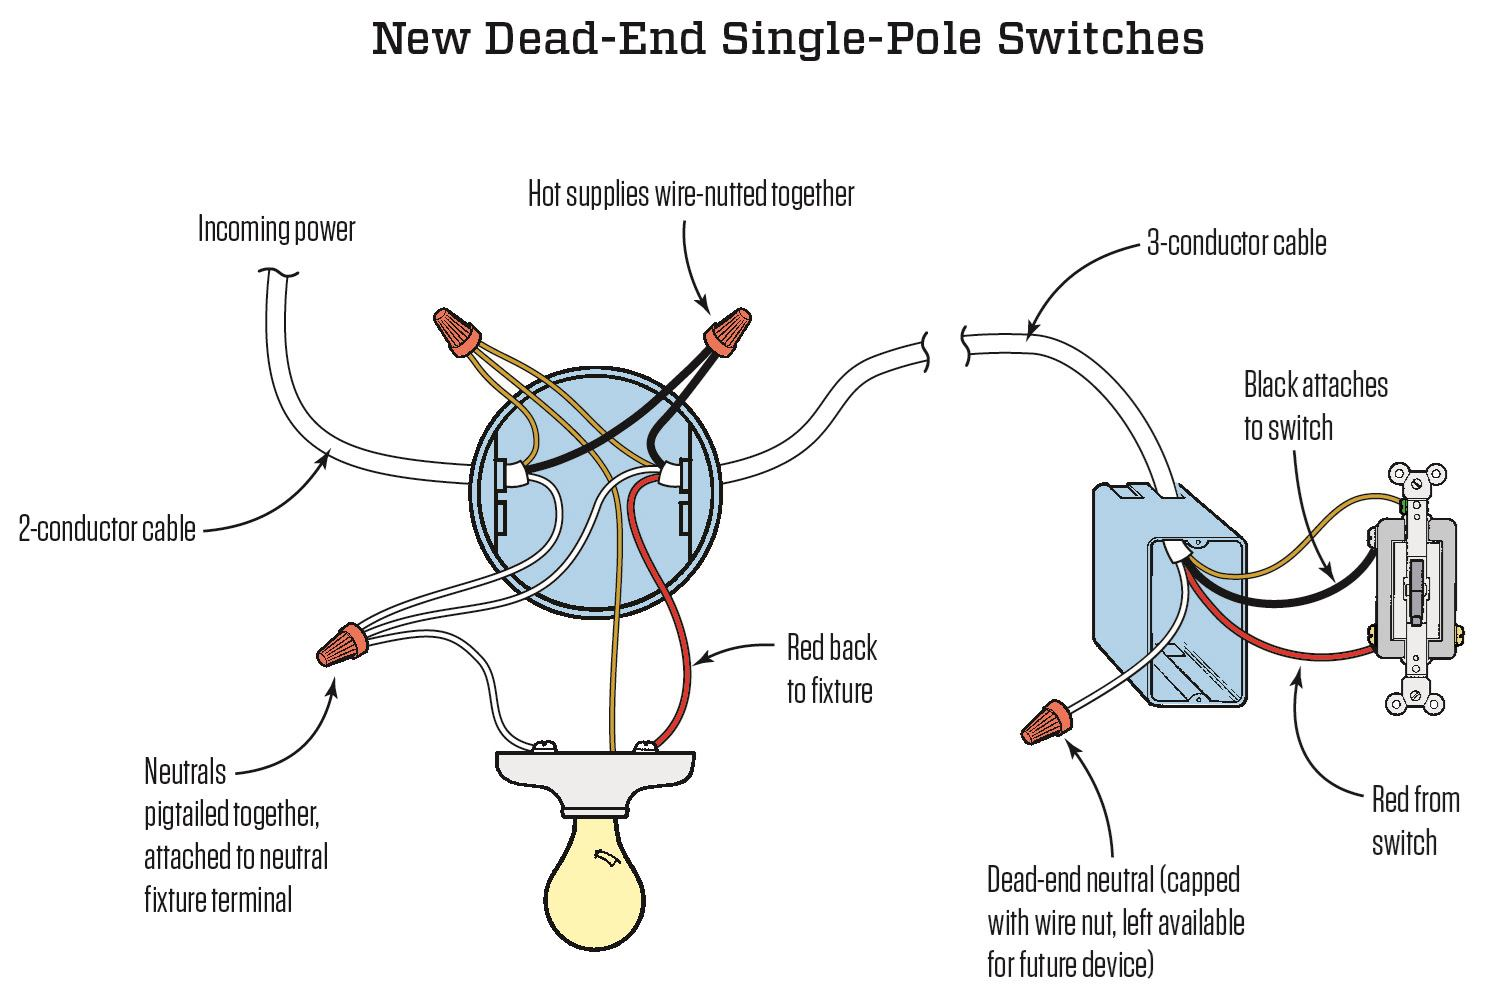 Single Pole Toggle Switch Wiring Diagram Library Double Throw Dead End Switches Jlc Online Electrical Rh Jlconline Com Pilot